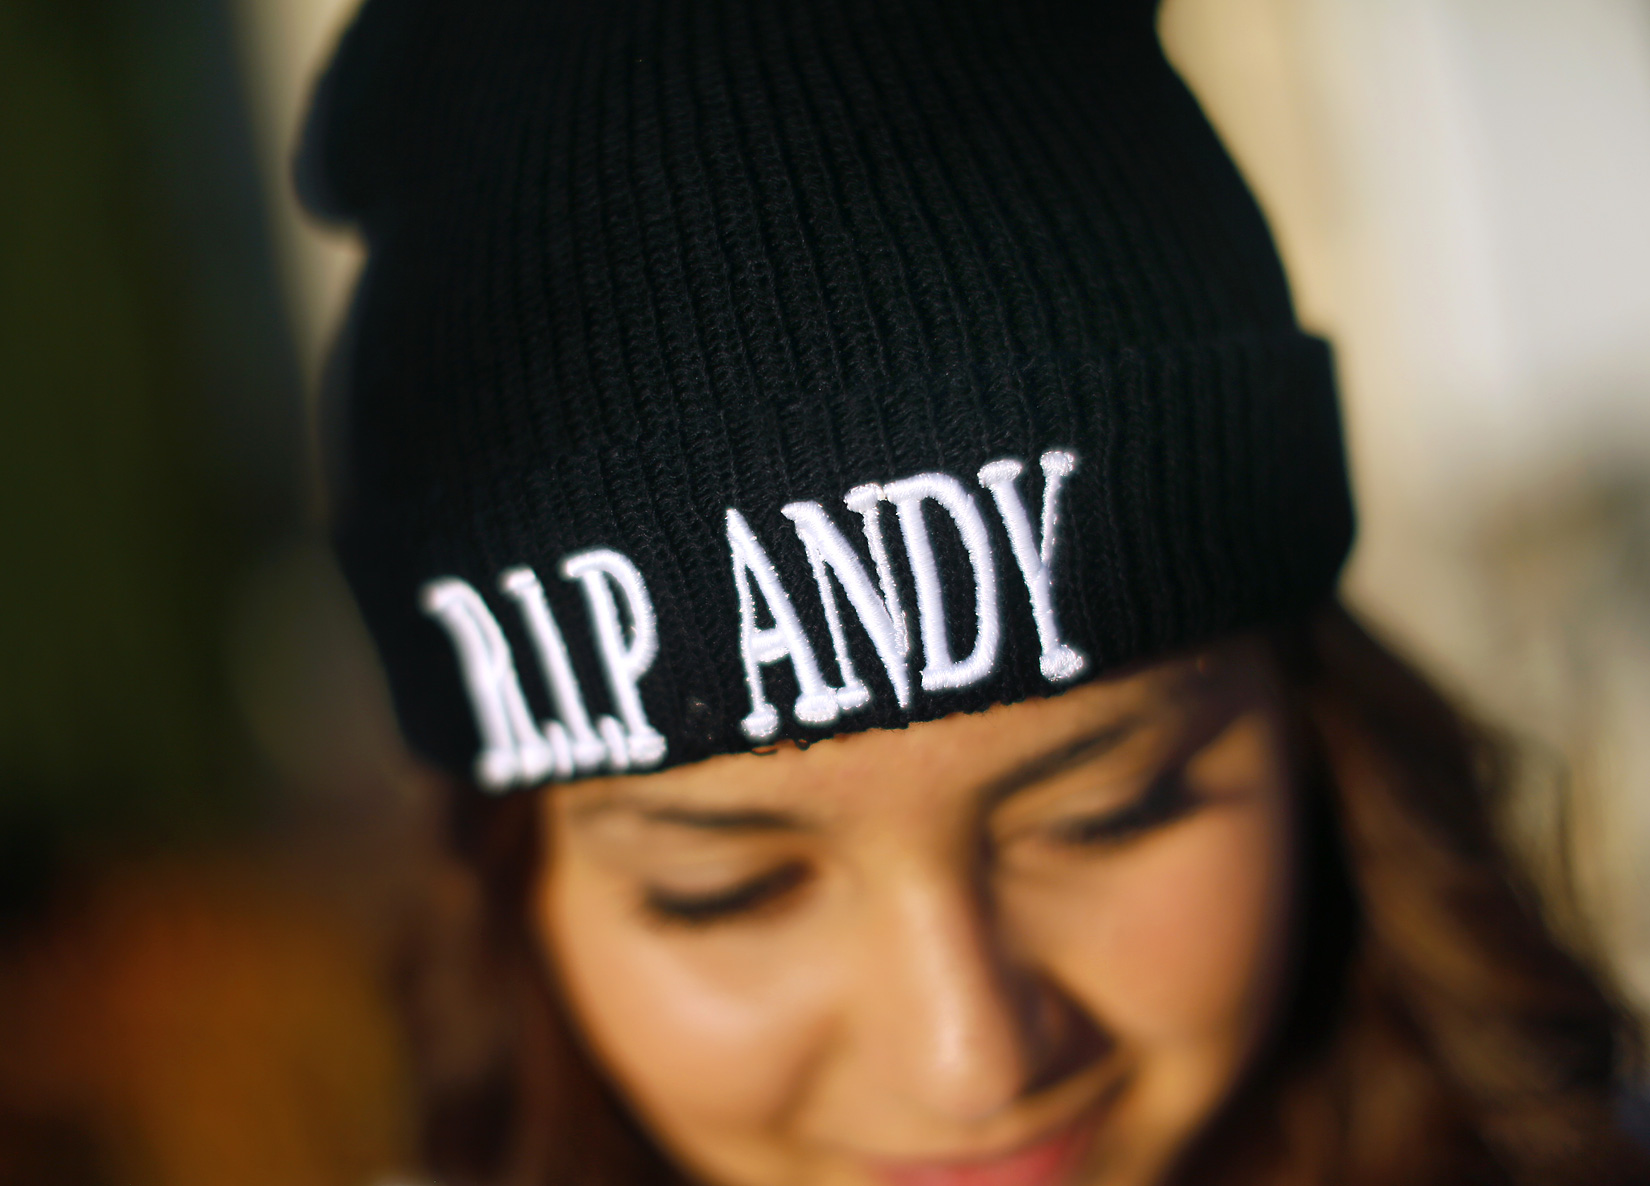 Esmeralda Mendoza, 14, wears a beanie with honoring her classmate Andy Lopez during a funeral service and viewing for Lopez at the Windsor-Healdsburg Mortuary on Sunday afternoon, October 27, 2013. (Conner Jay/The Press Democrat)